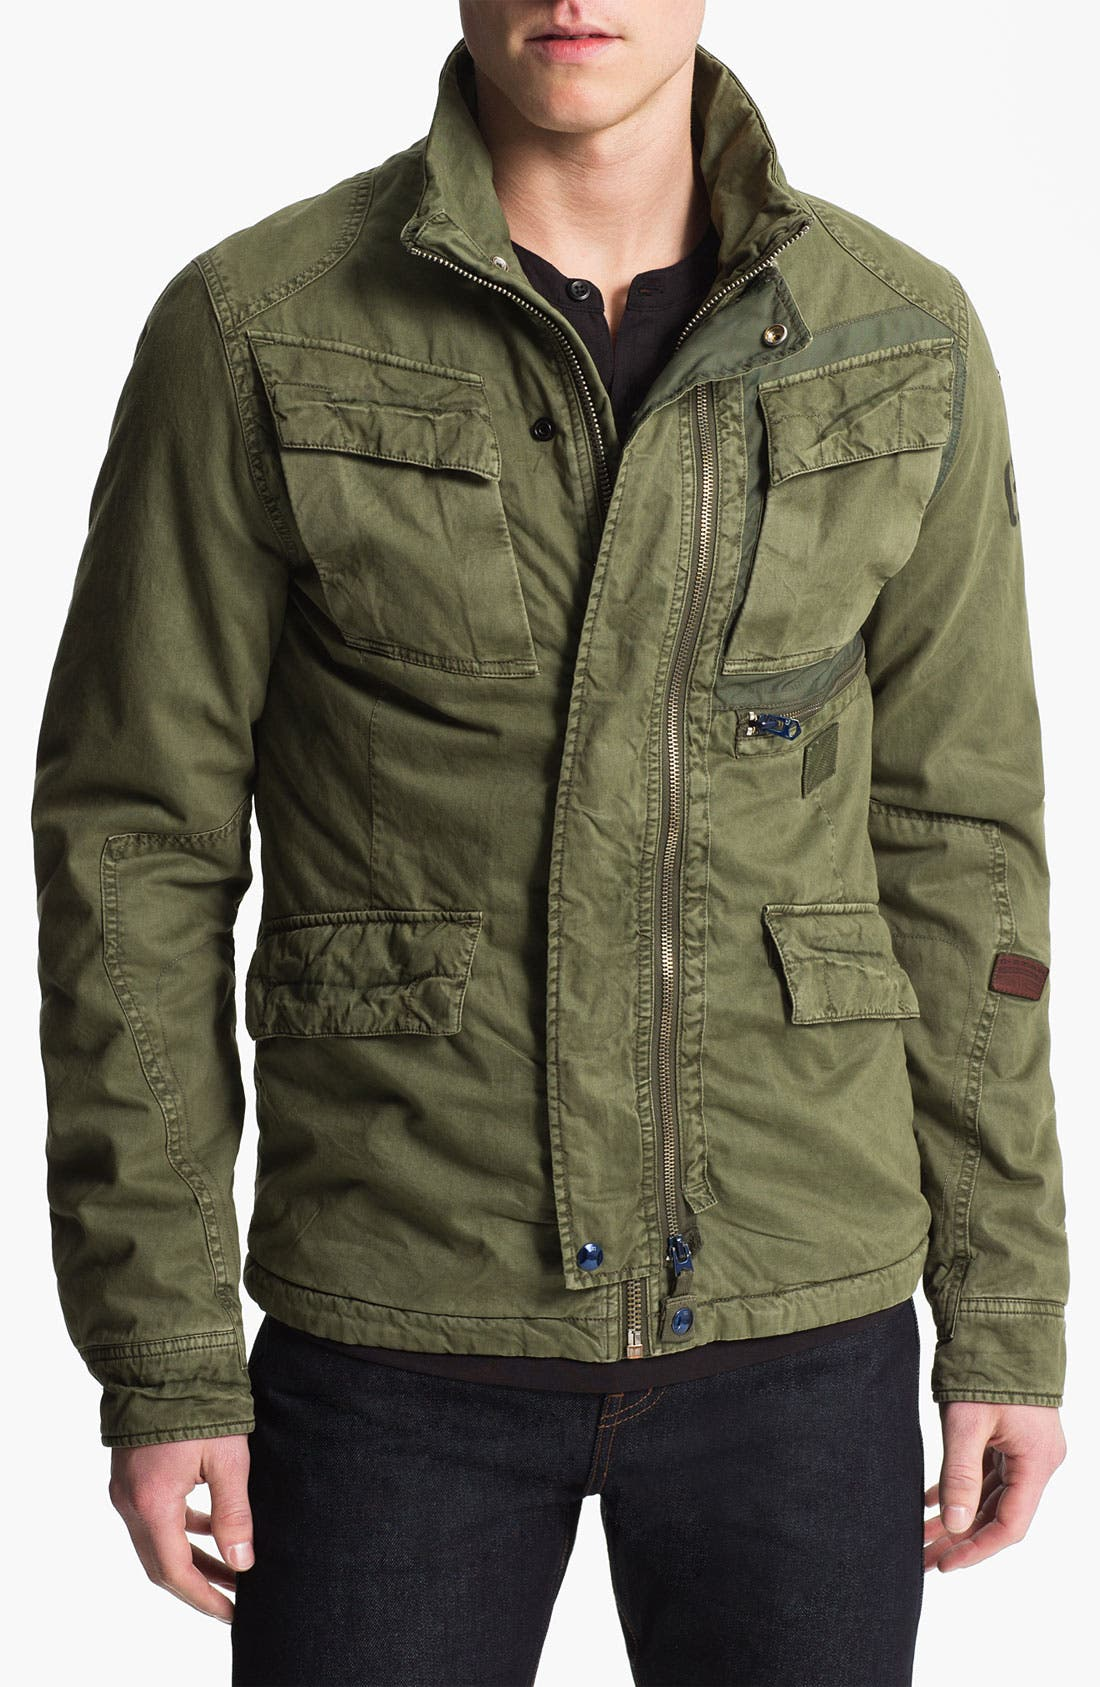 Alternate Image 1 Selected - G-Star Raw 'Aero' Field Jacket